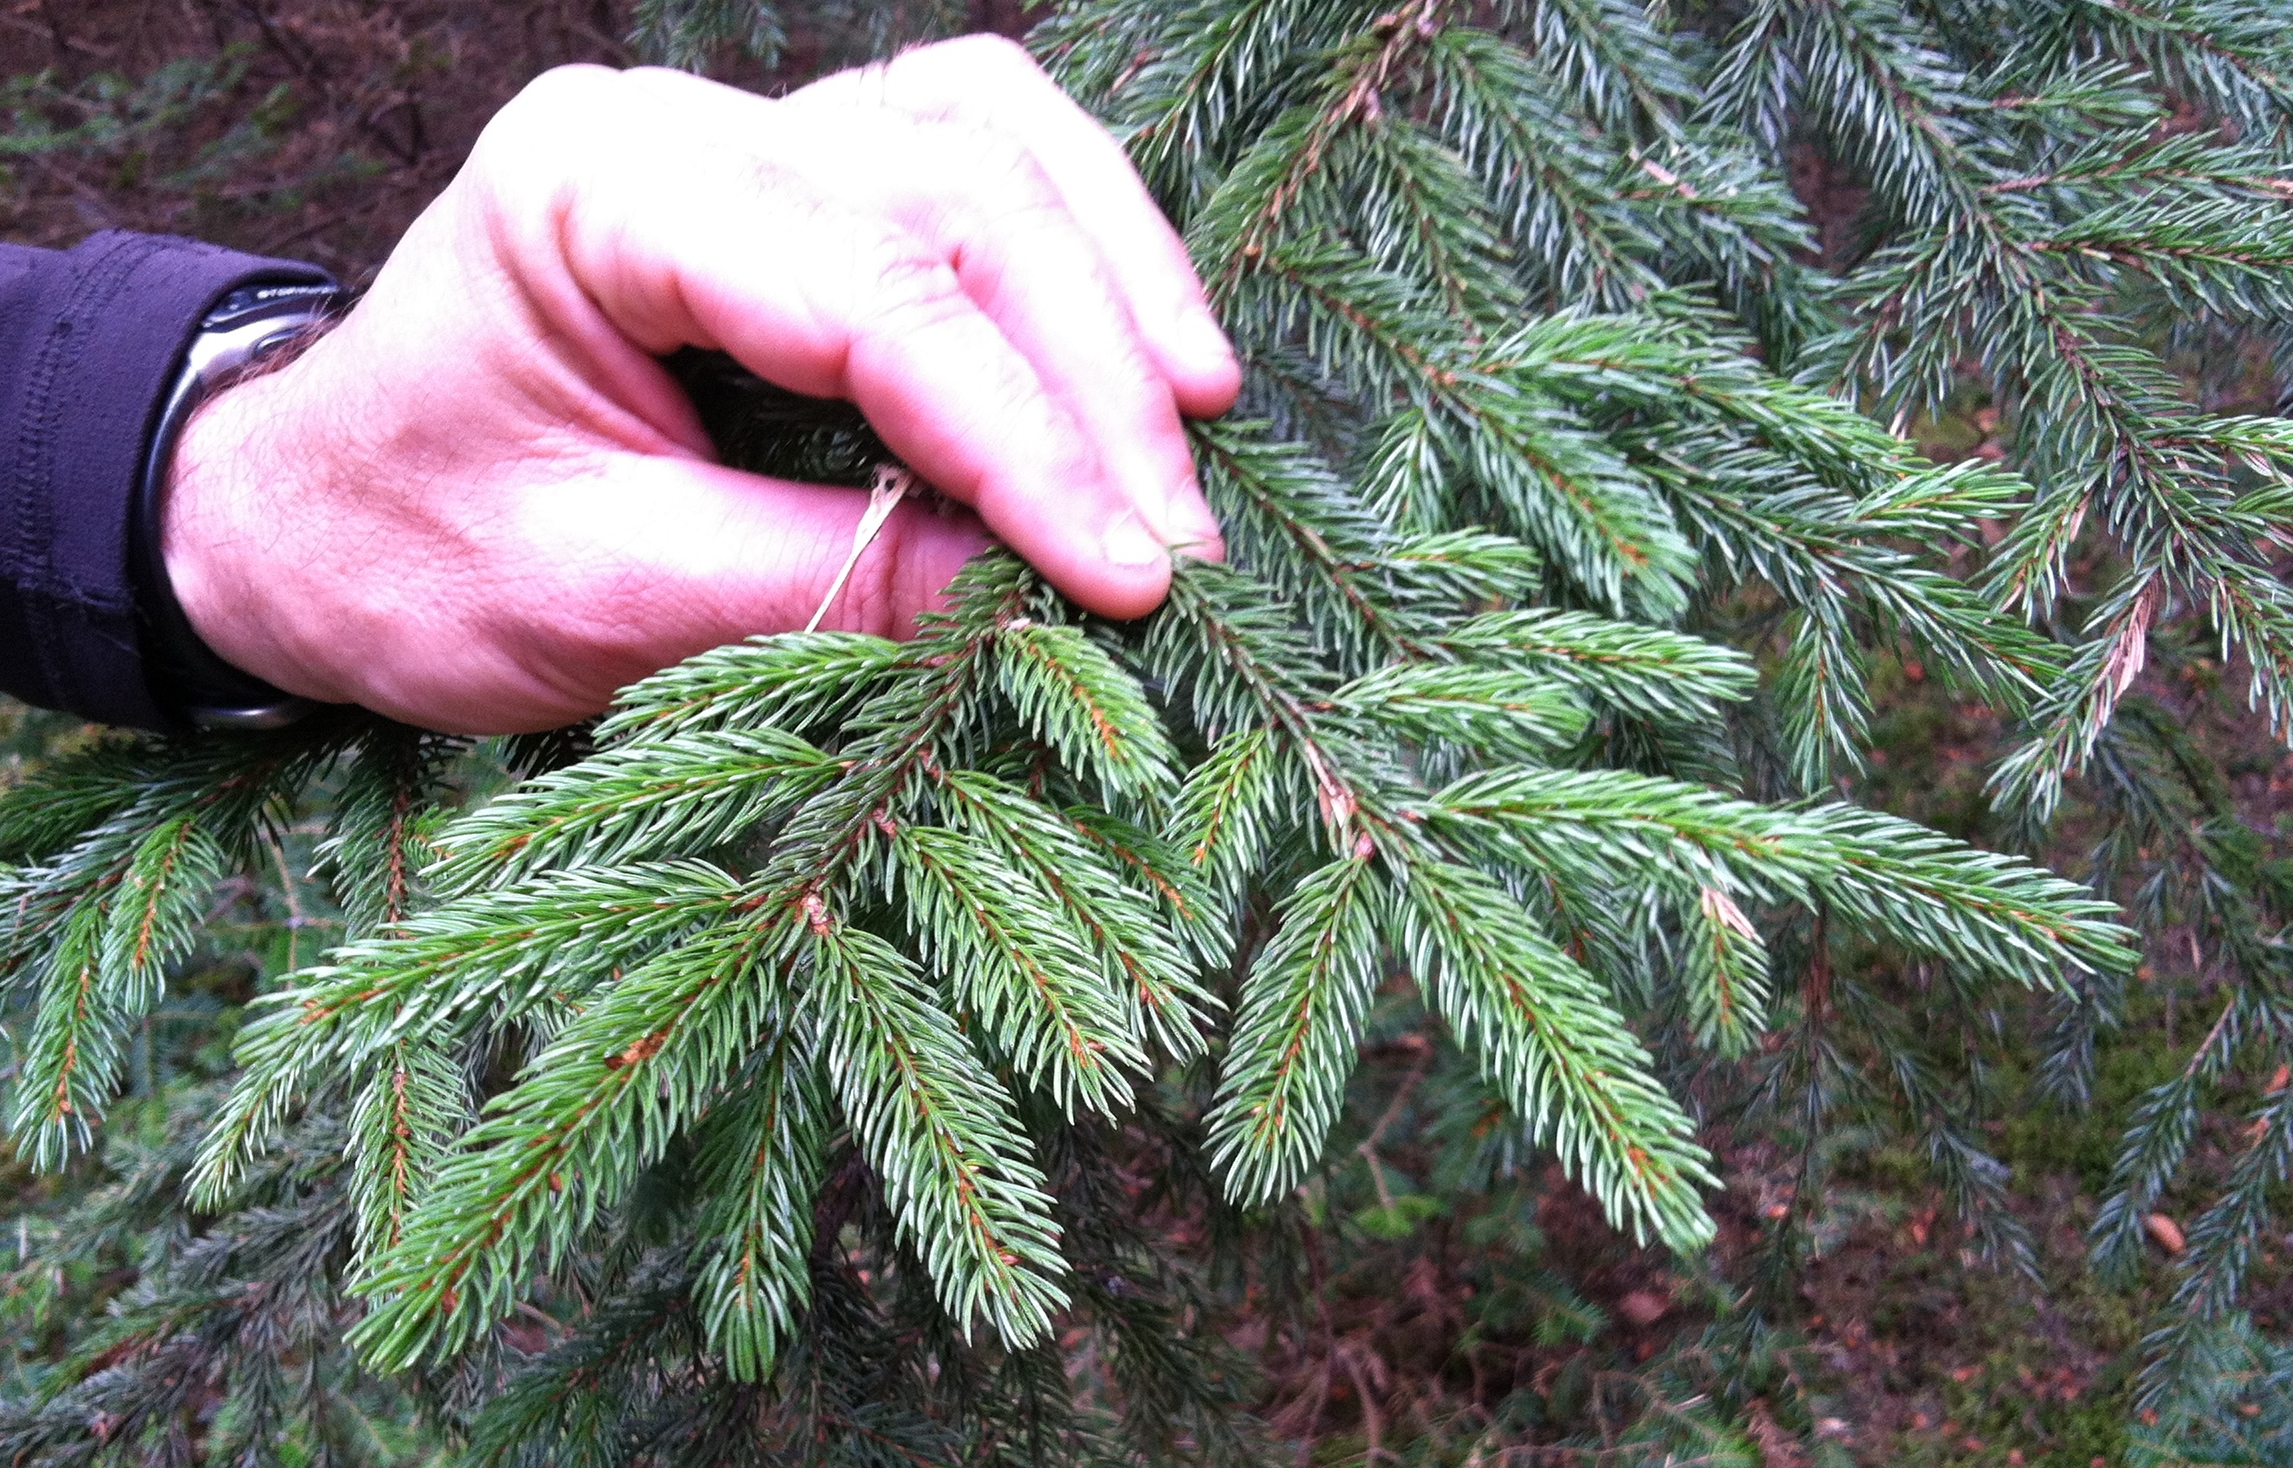 How does the spruce grow